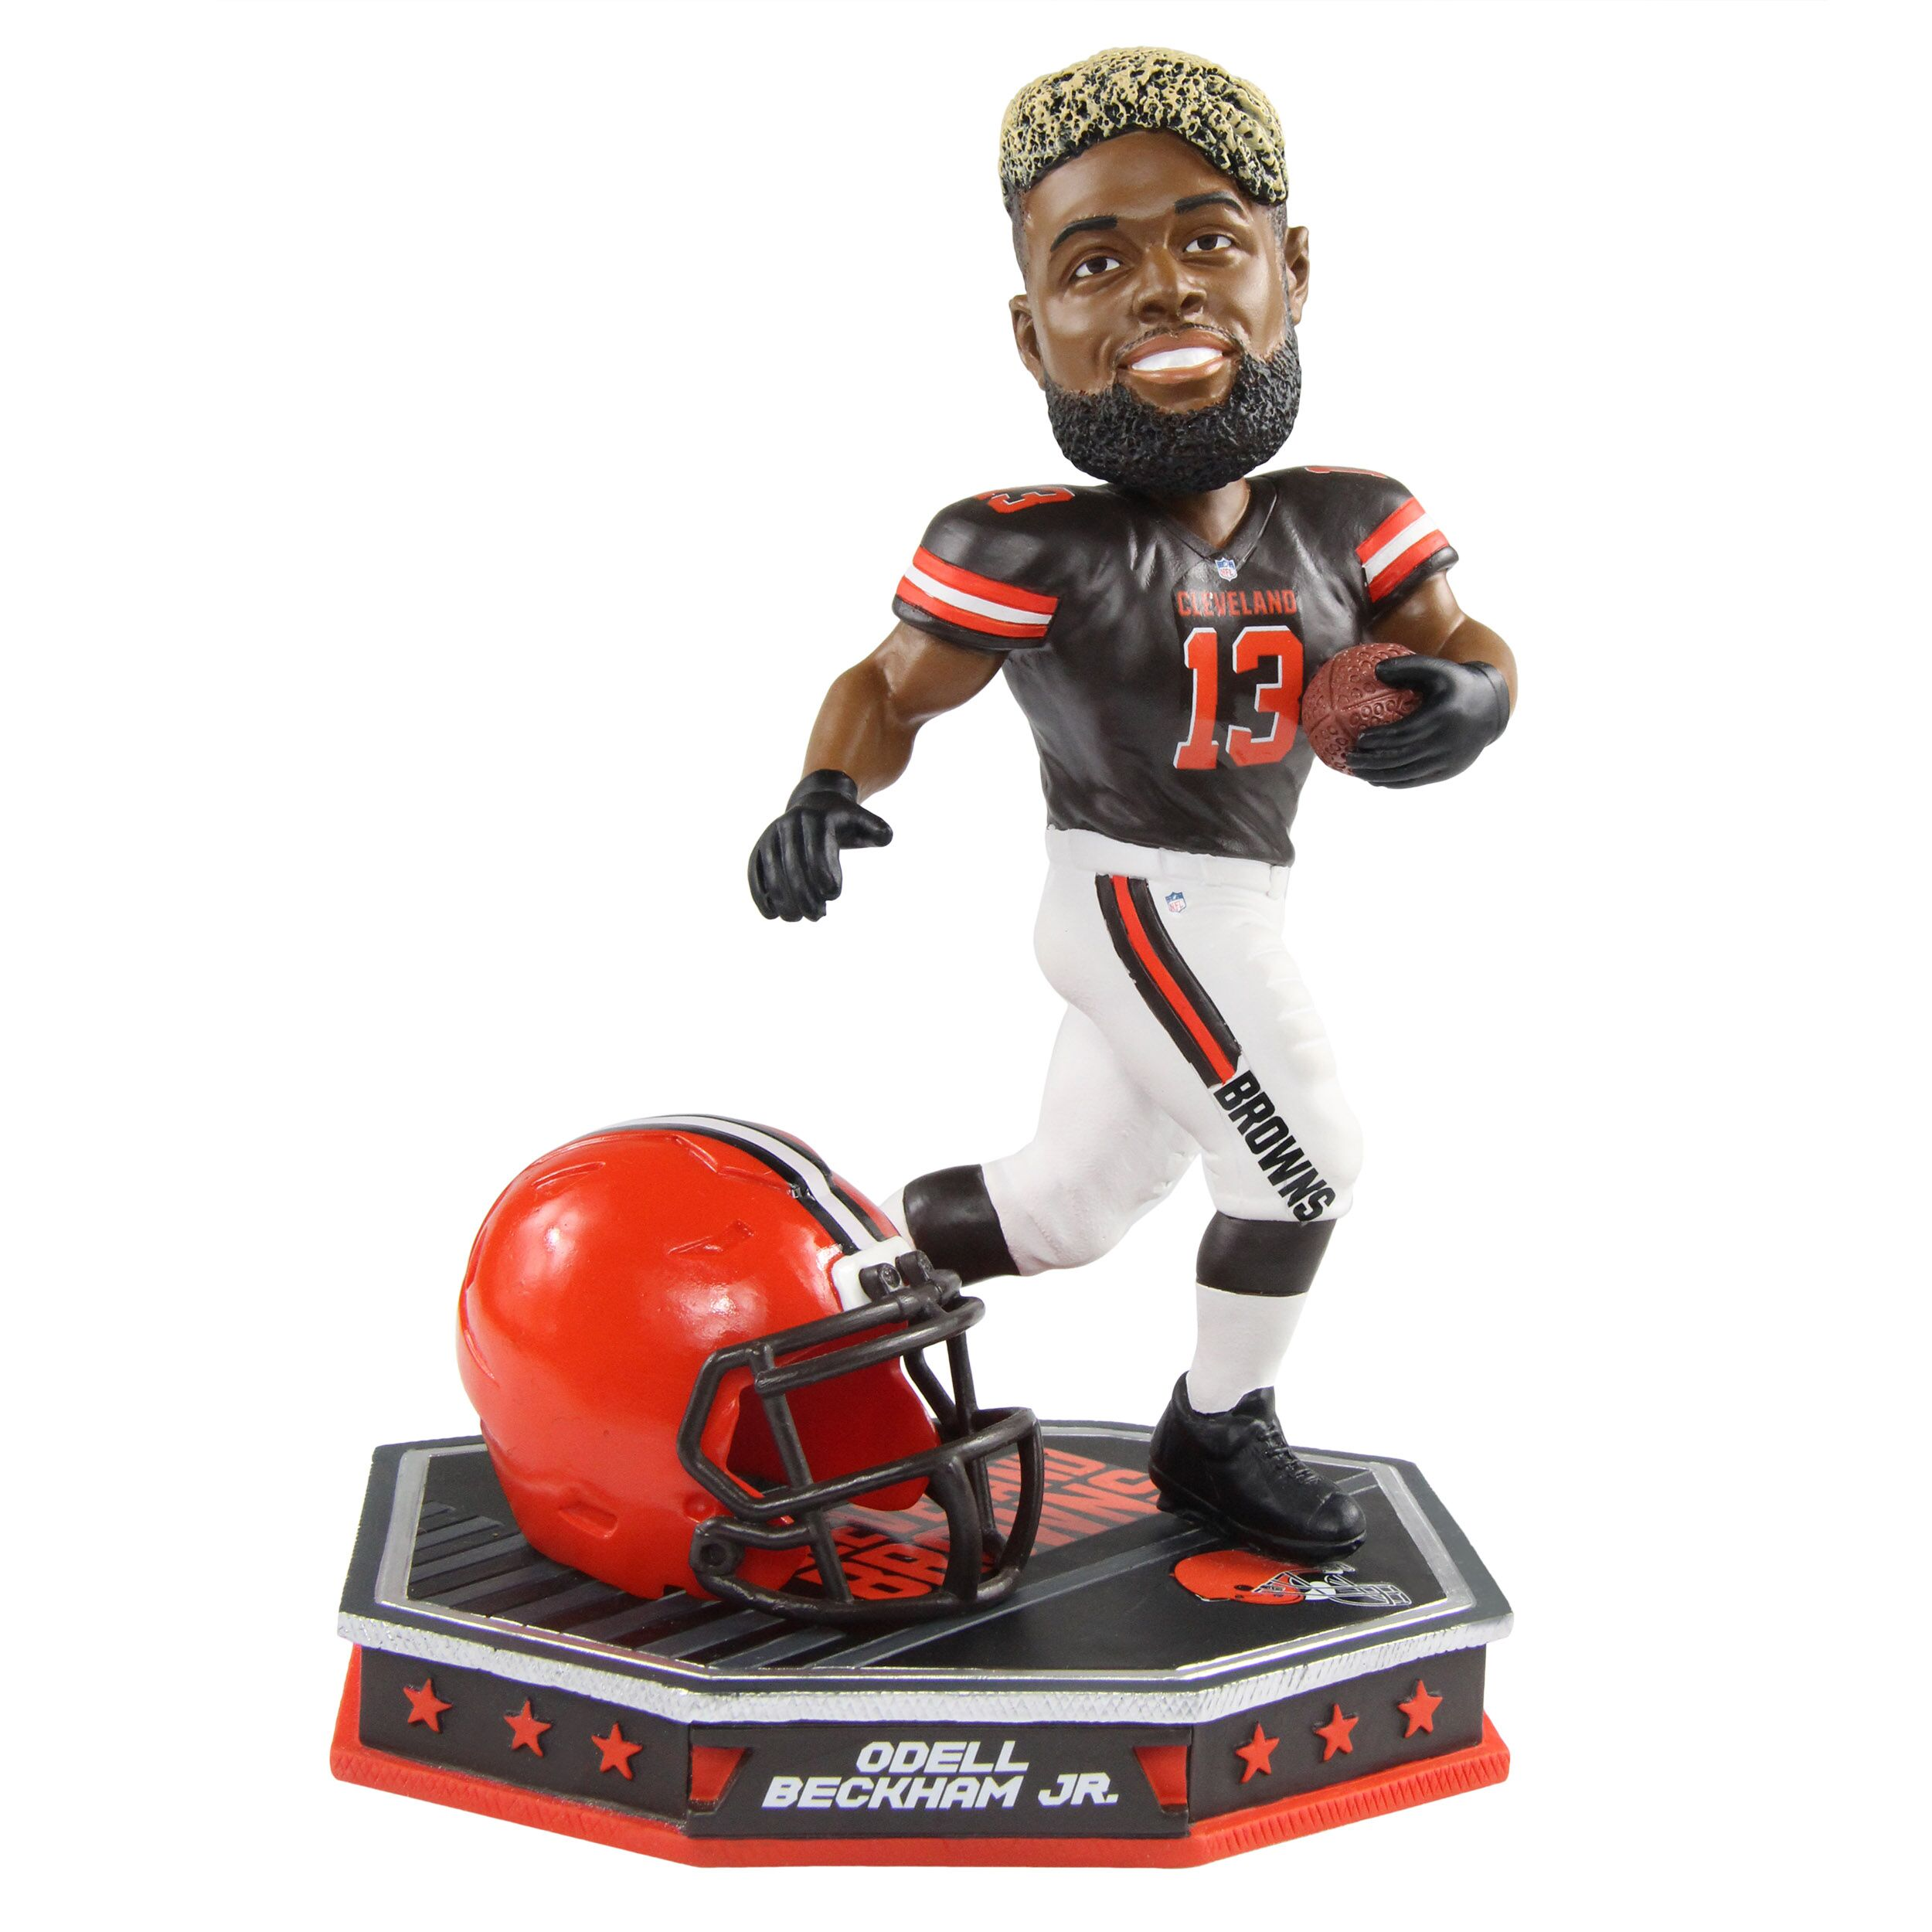 Cleveland Browns fans can save at the Bobblehead Hall now